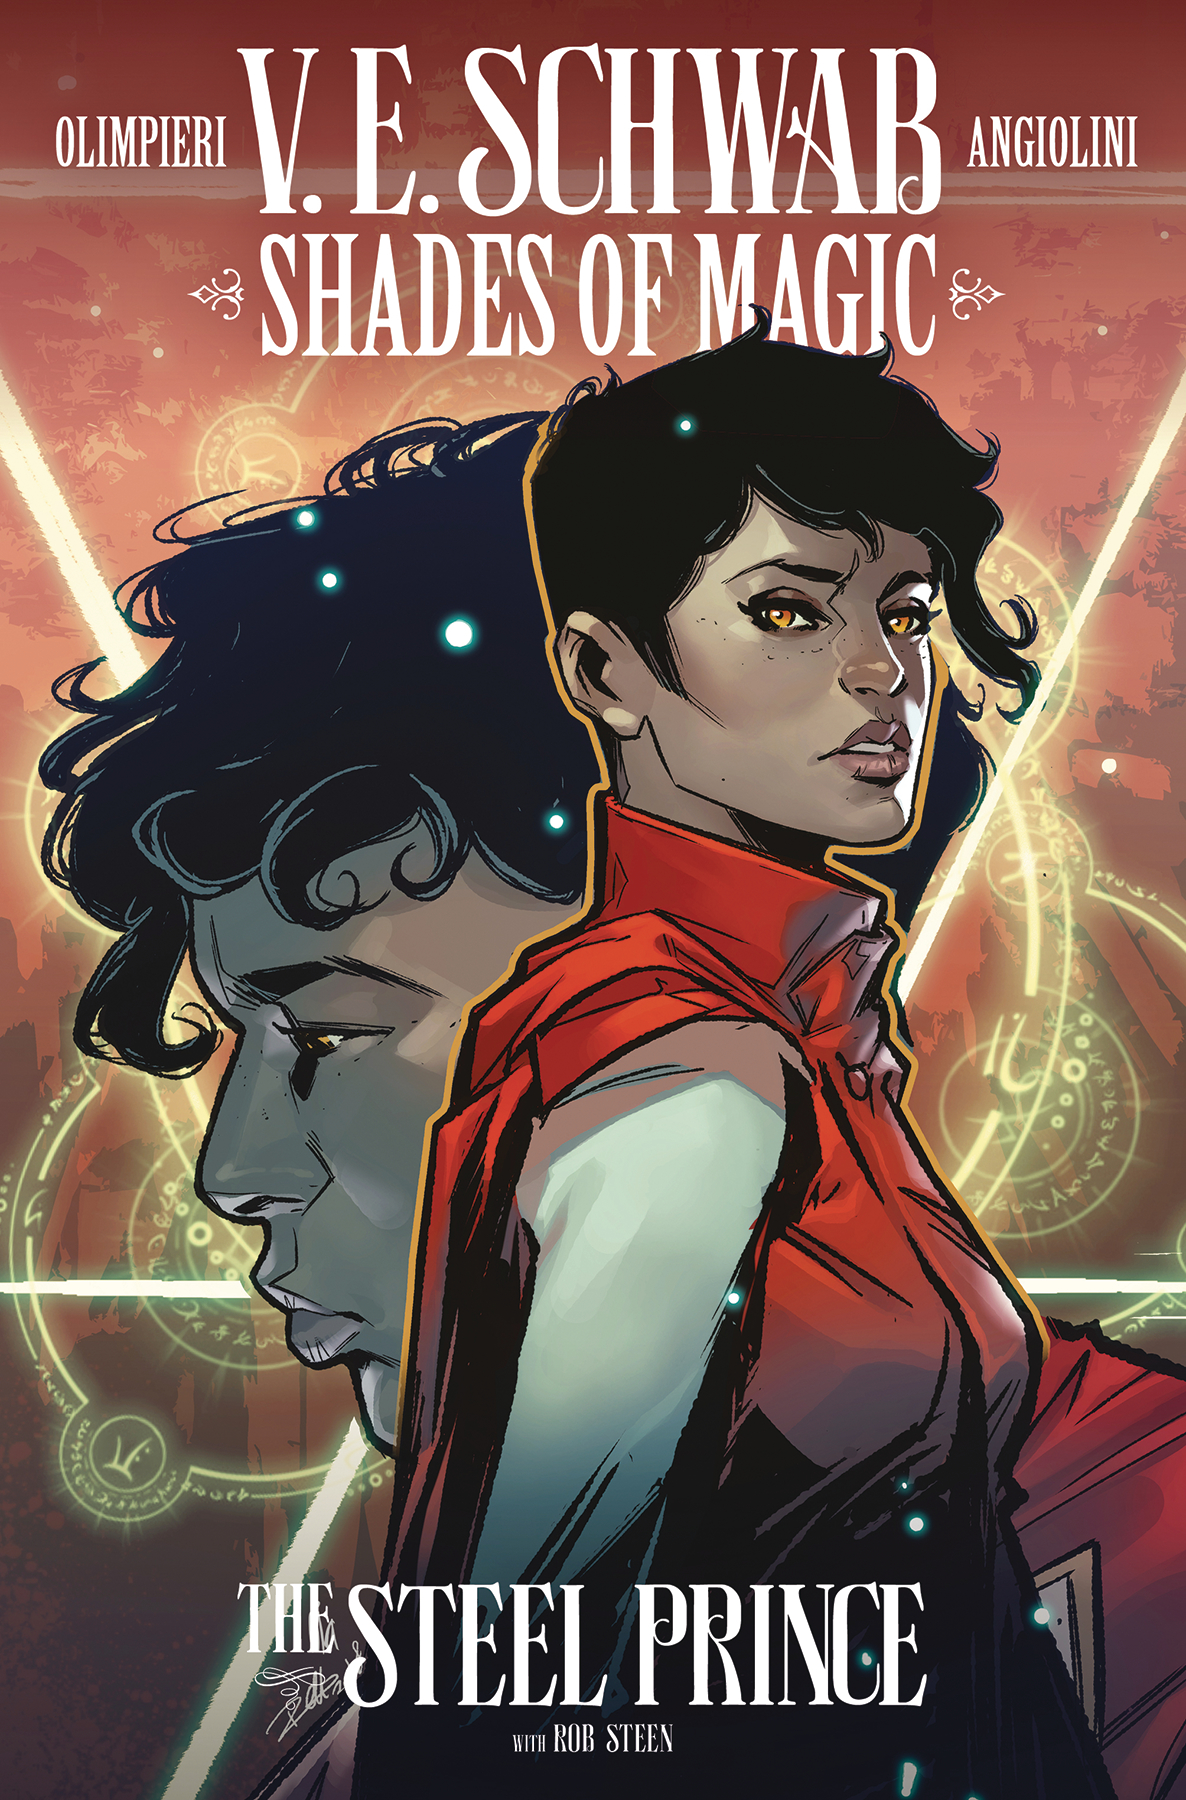 SHADES OF MAGIC #4 (OF 4) STEEL PRINCE CVR B INGRANATA & SAH